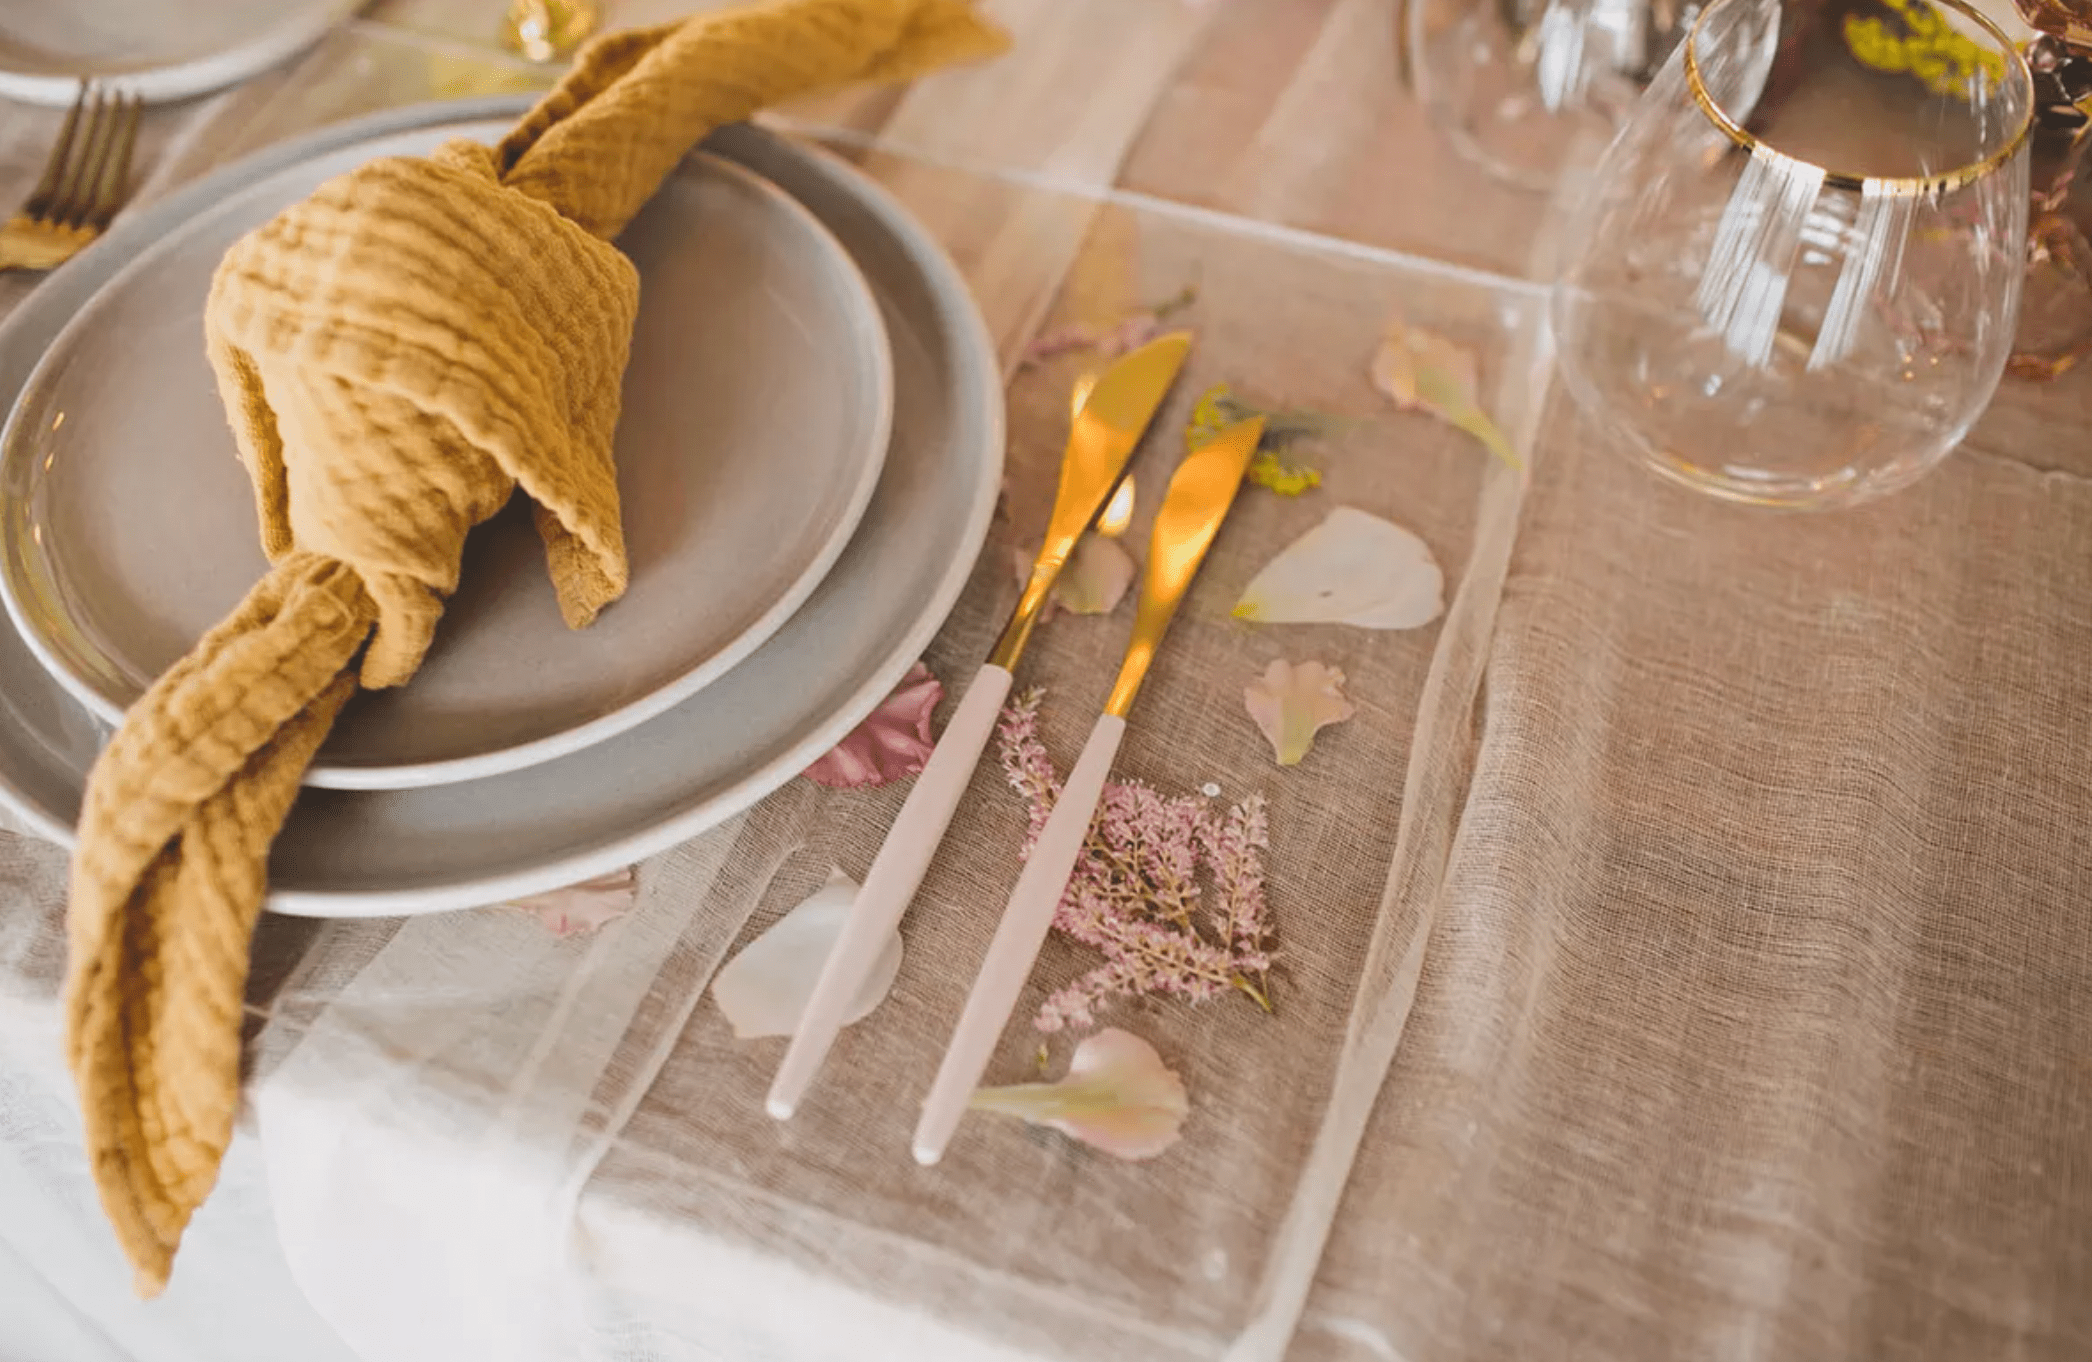 Placemat with pressed flowers